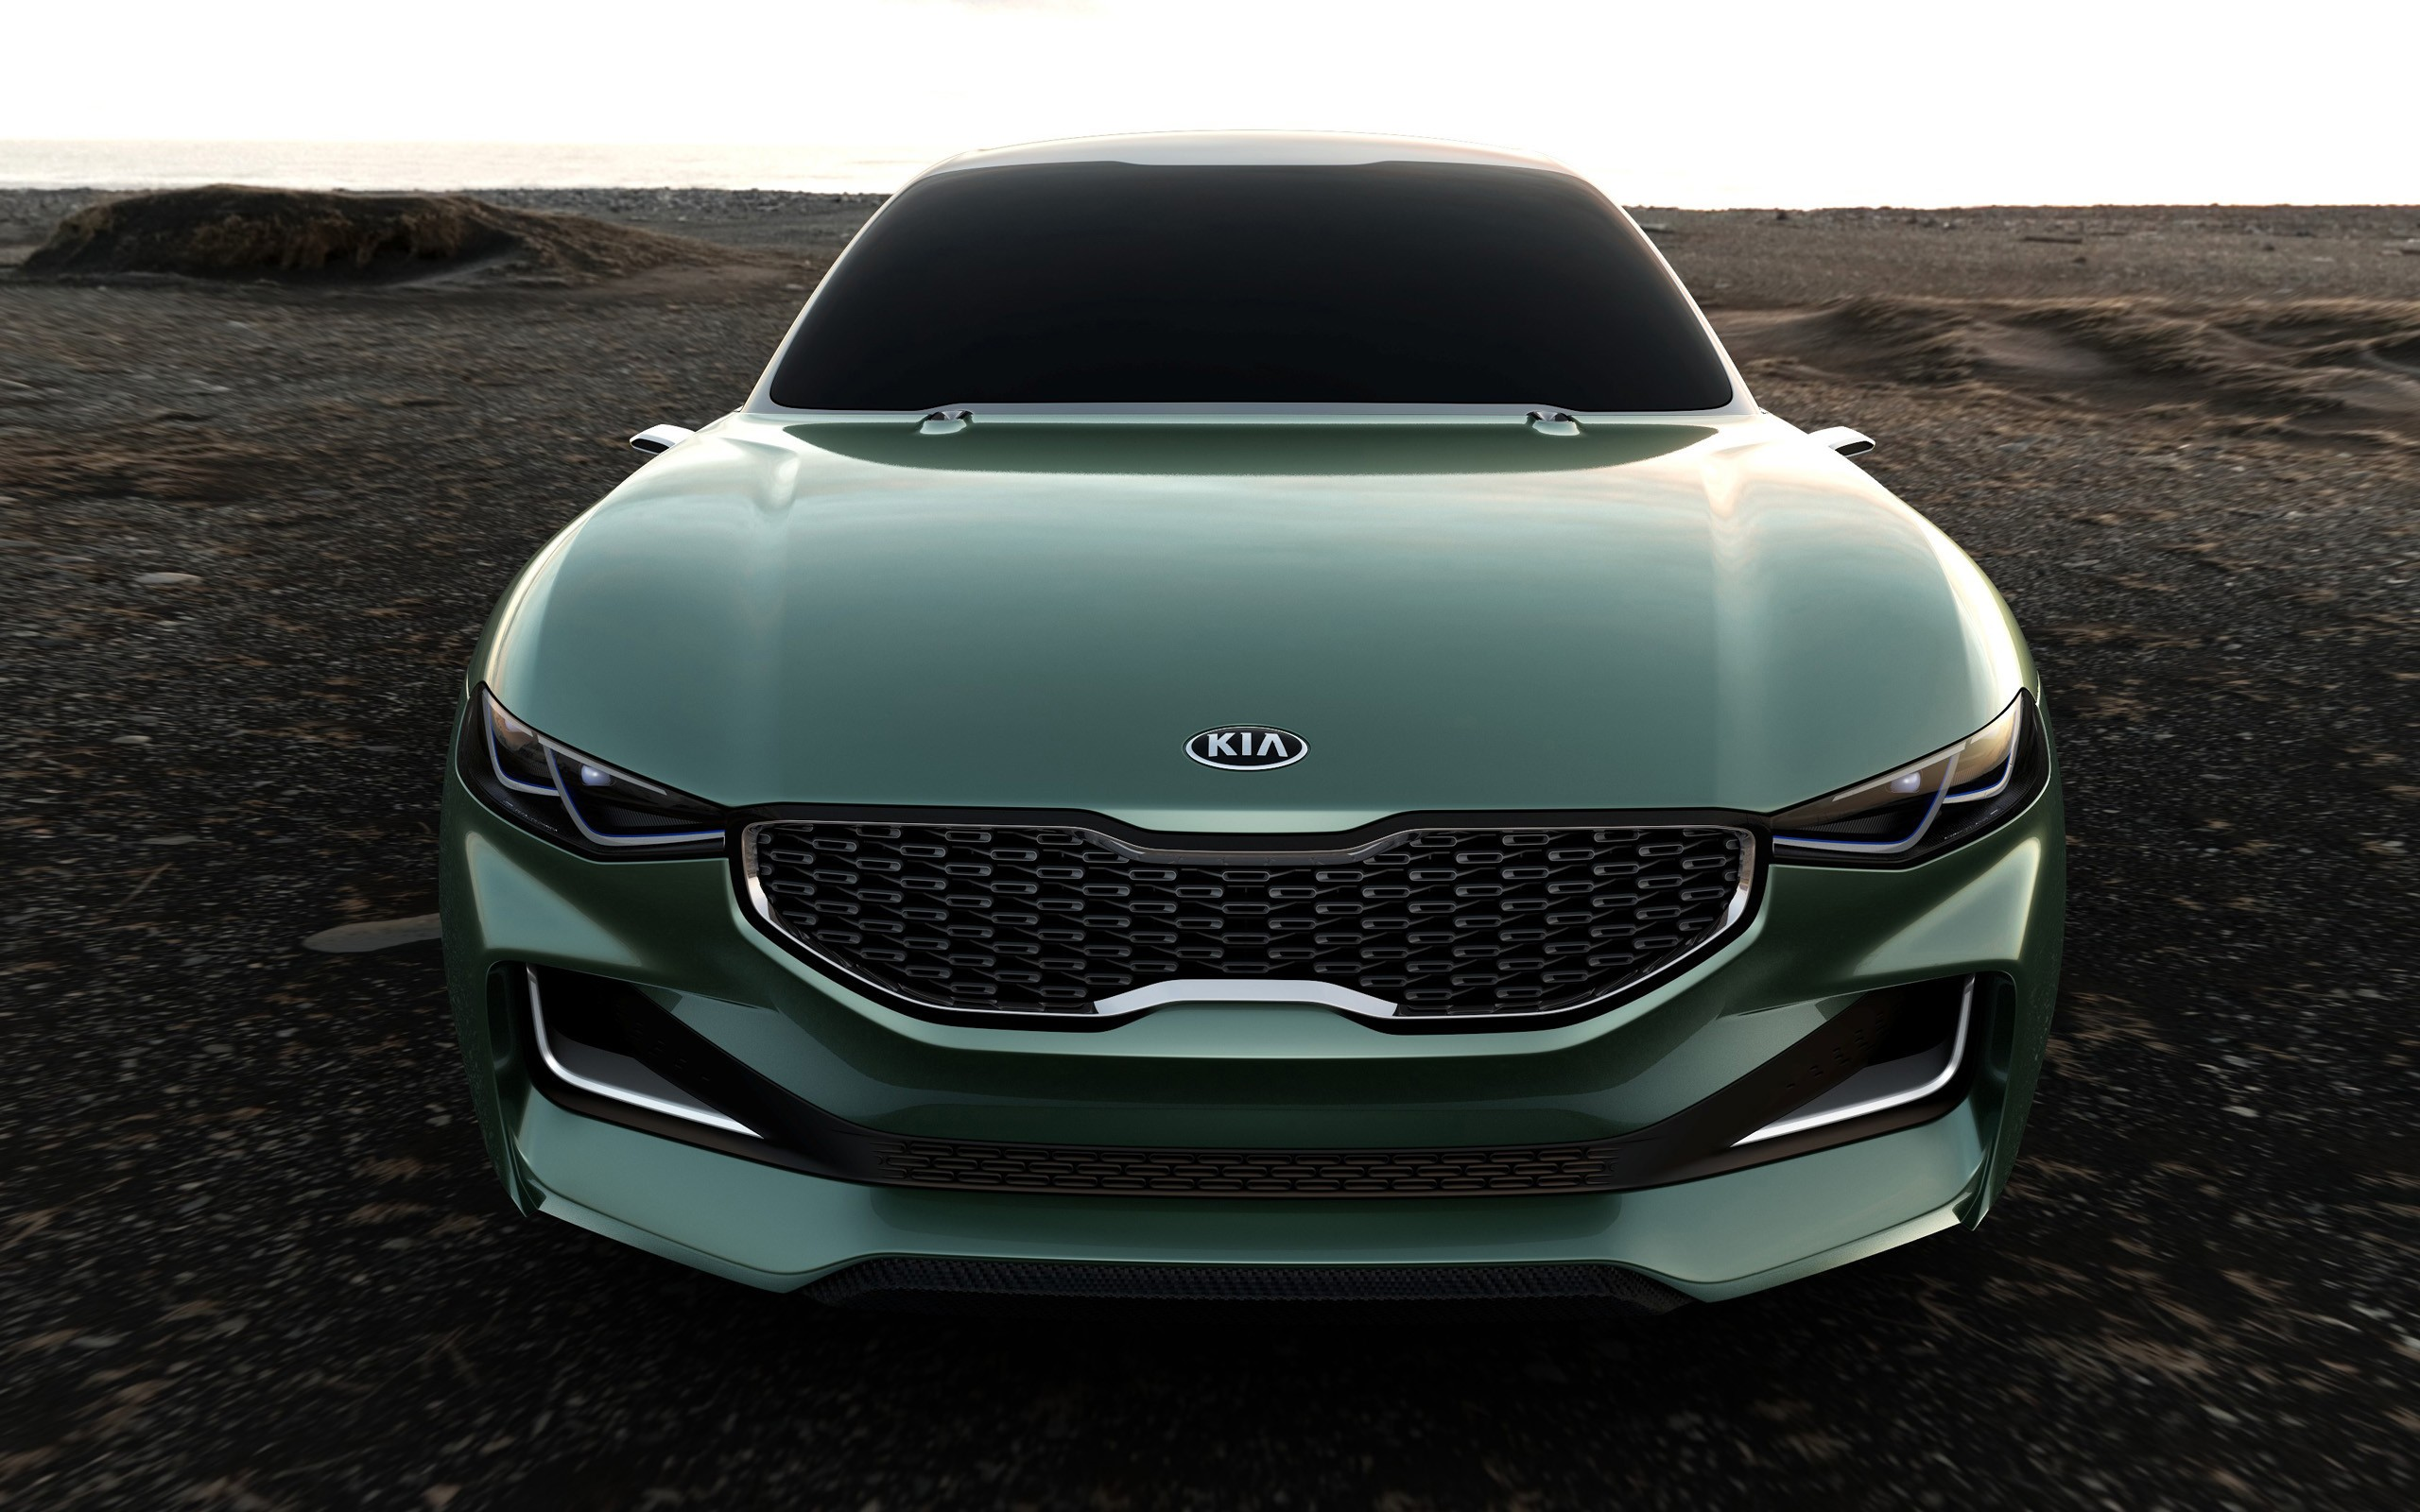 High Resolution Desktop Wallpapers Cars 2015 Kia Novo Concept Wallpaper Hd Car Wallpapers Id 5269